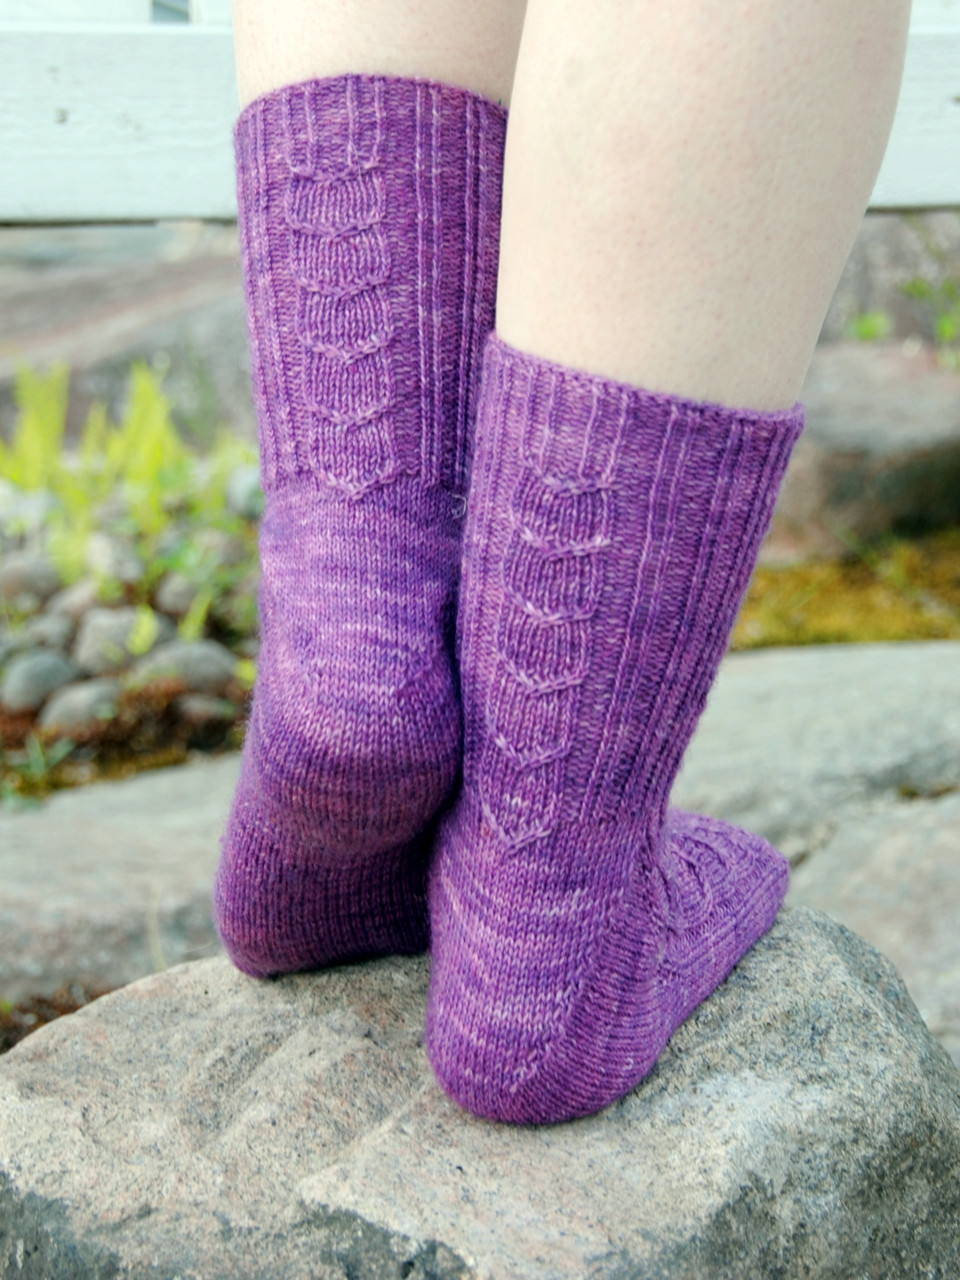 Back view of Umpu socks